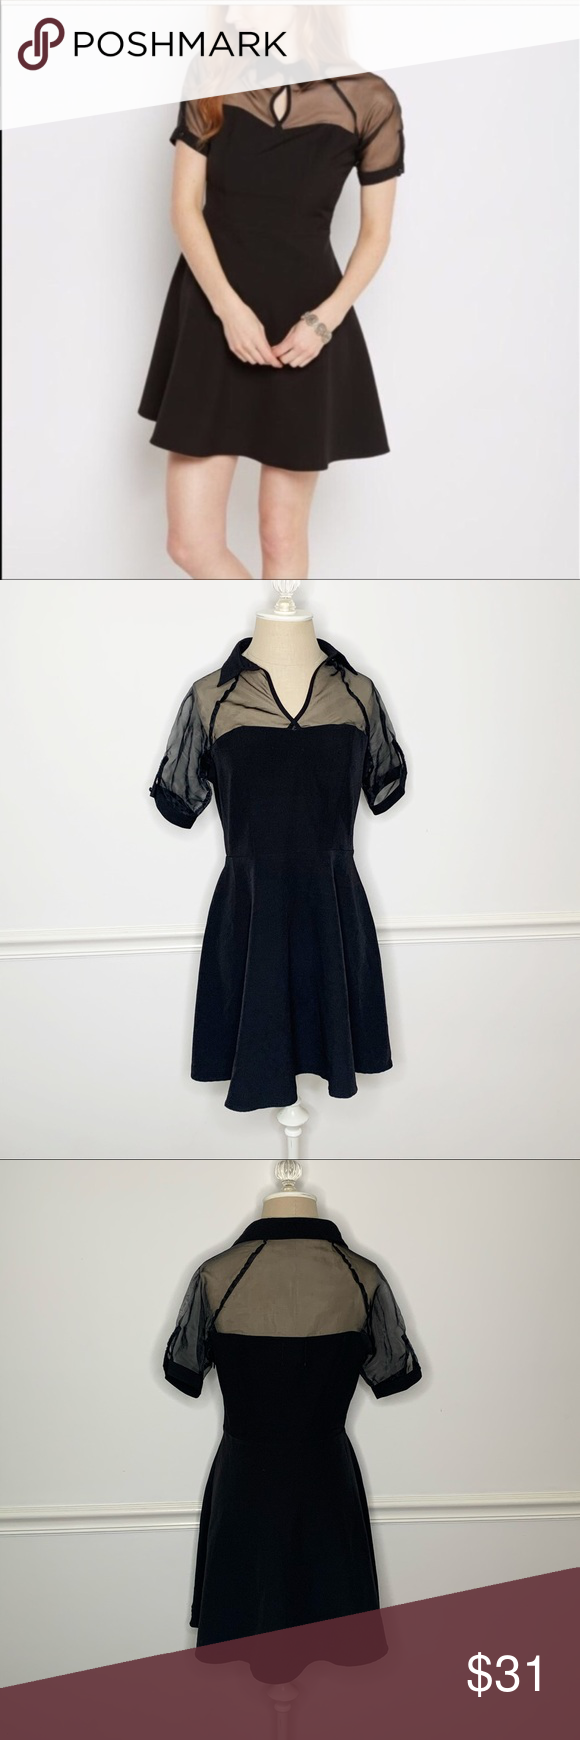 Wild Blue X Sadie Robertson Fit And Flare Dress Adorable Black Dress With A Flare Skirt Collared Neckline With A S Fit And Flare Dress Flare Dress Flare Skirt [ 1740 x 580 Pixel ]